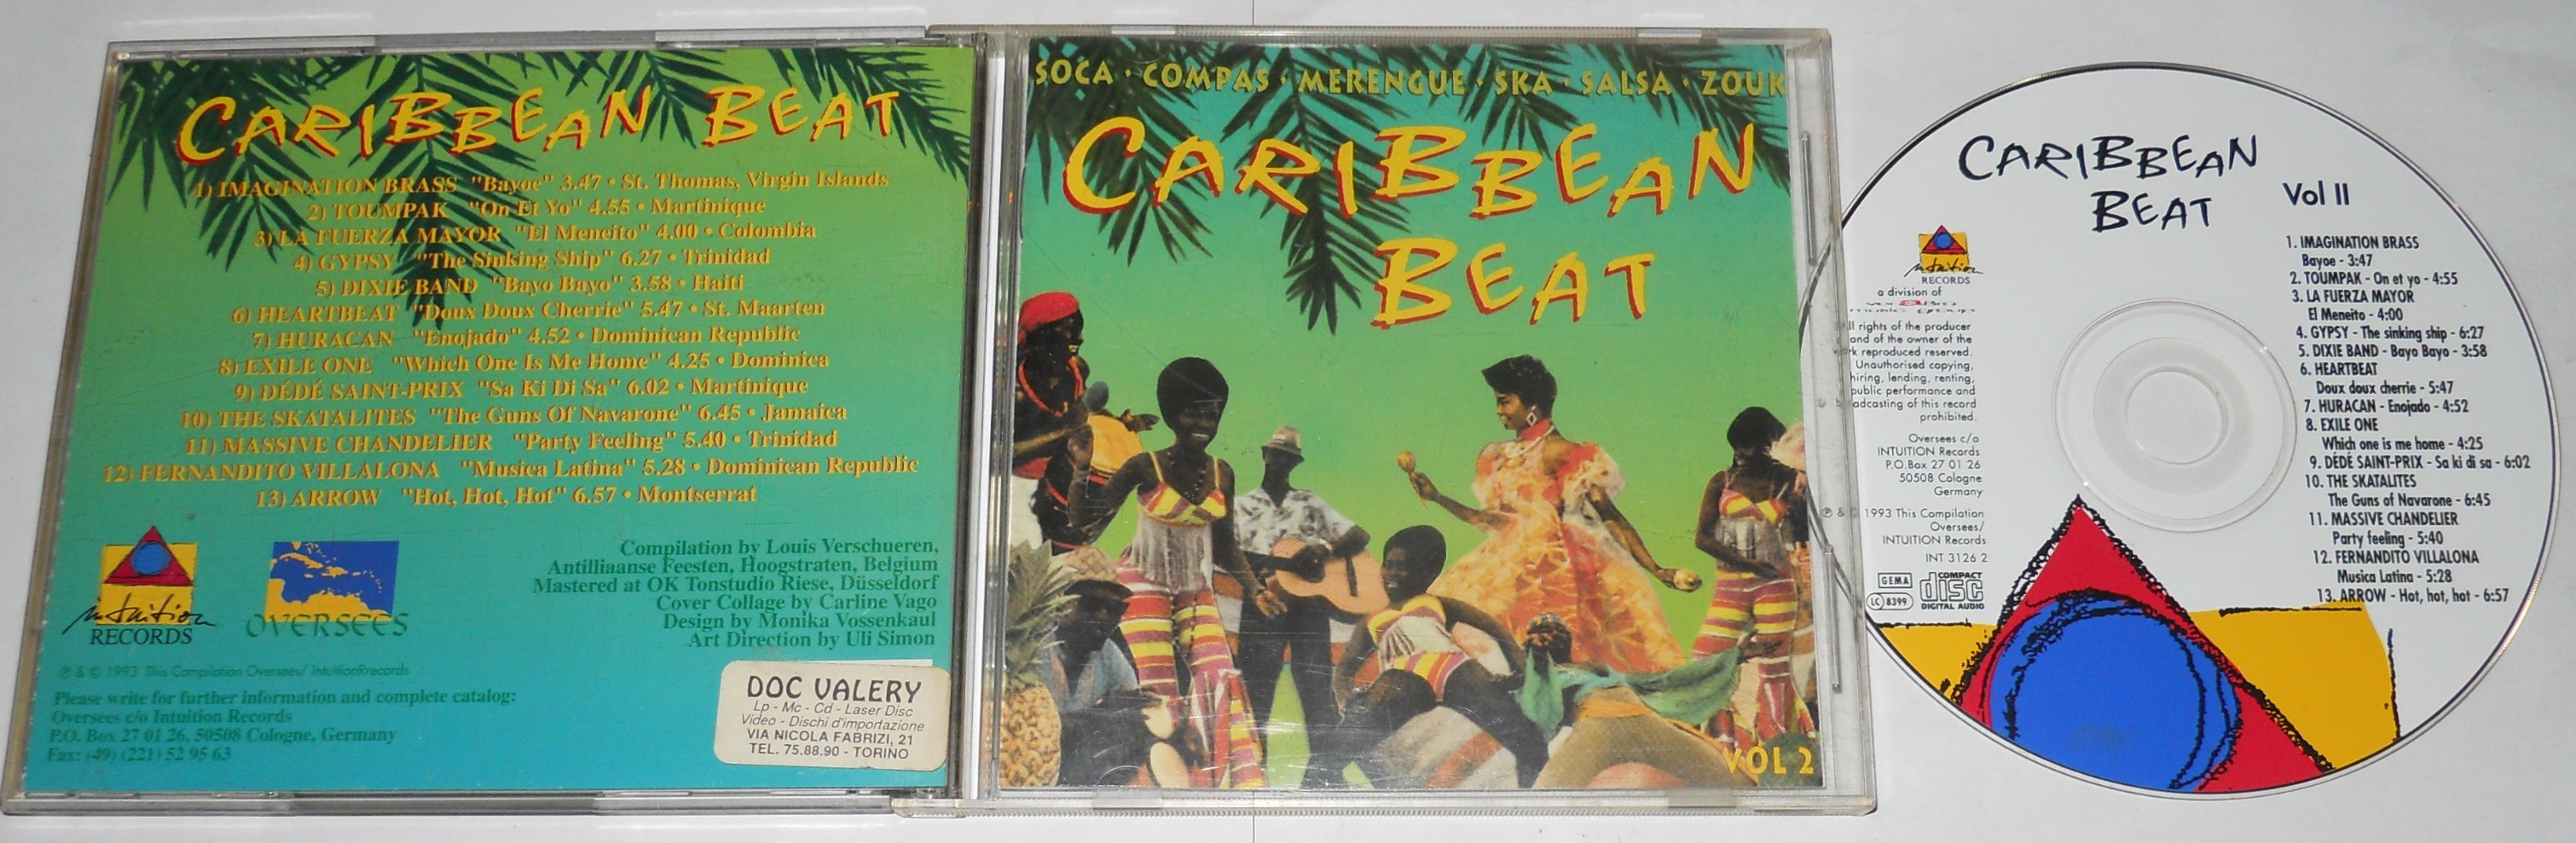 caribbean beat vol. II